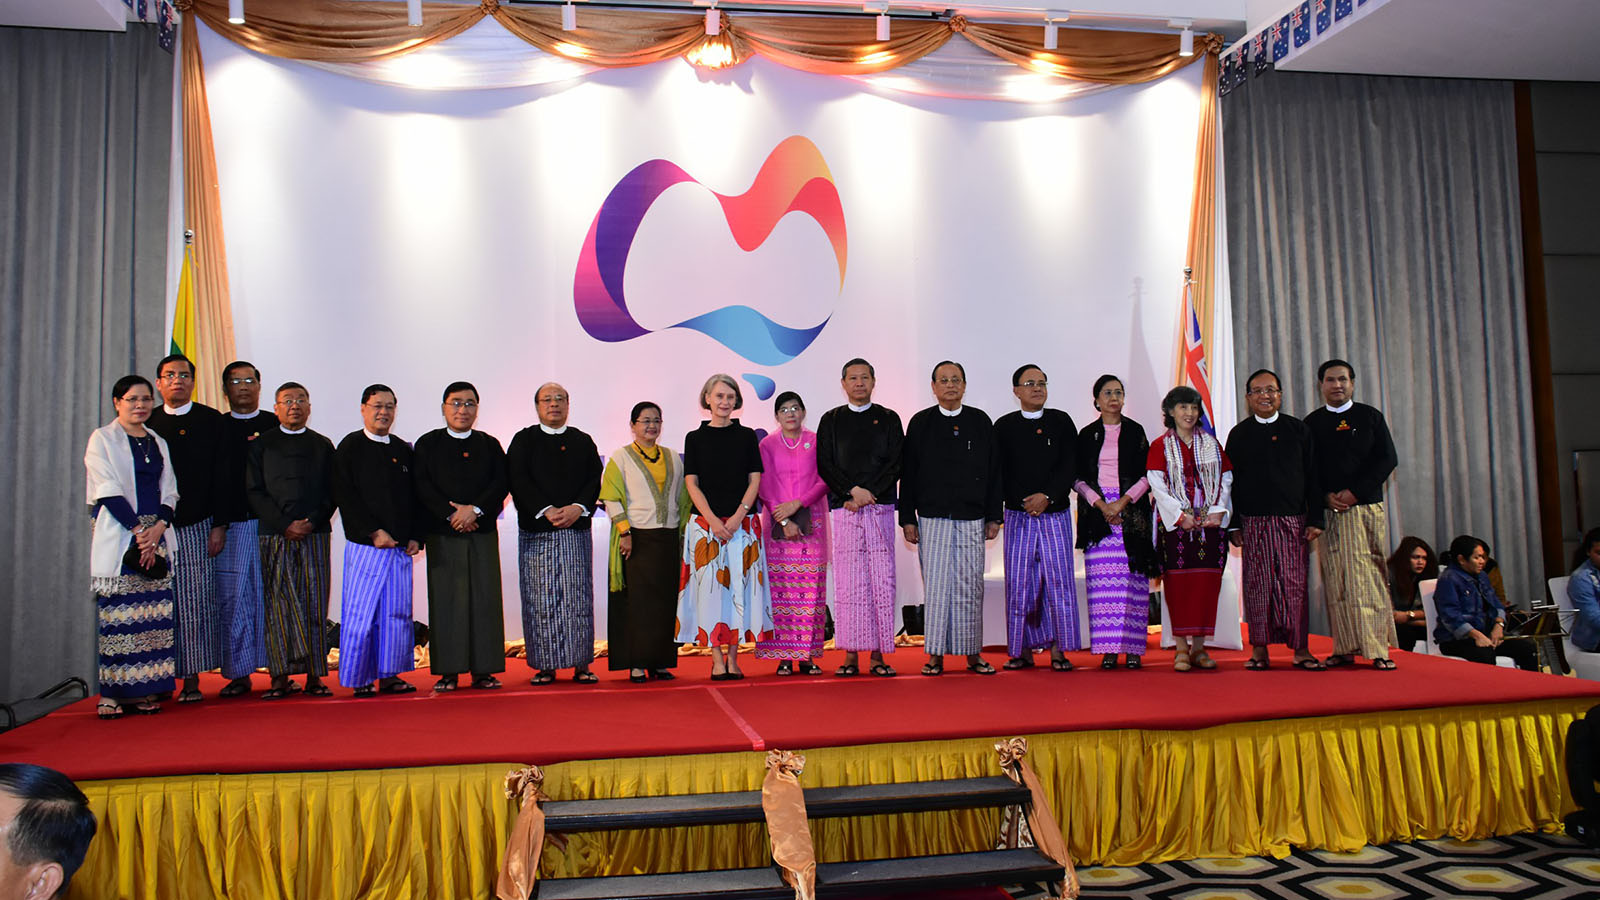 Union Minister Dr Myo Thein Gyi and wife, and Australian Ambassador Ms Andrea Faulkner pose for a group photo together with and attendees at the dinner reception to mark the Australian National Day in Nay Pyi Taw yesterday. Photo: MNA